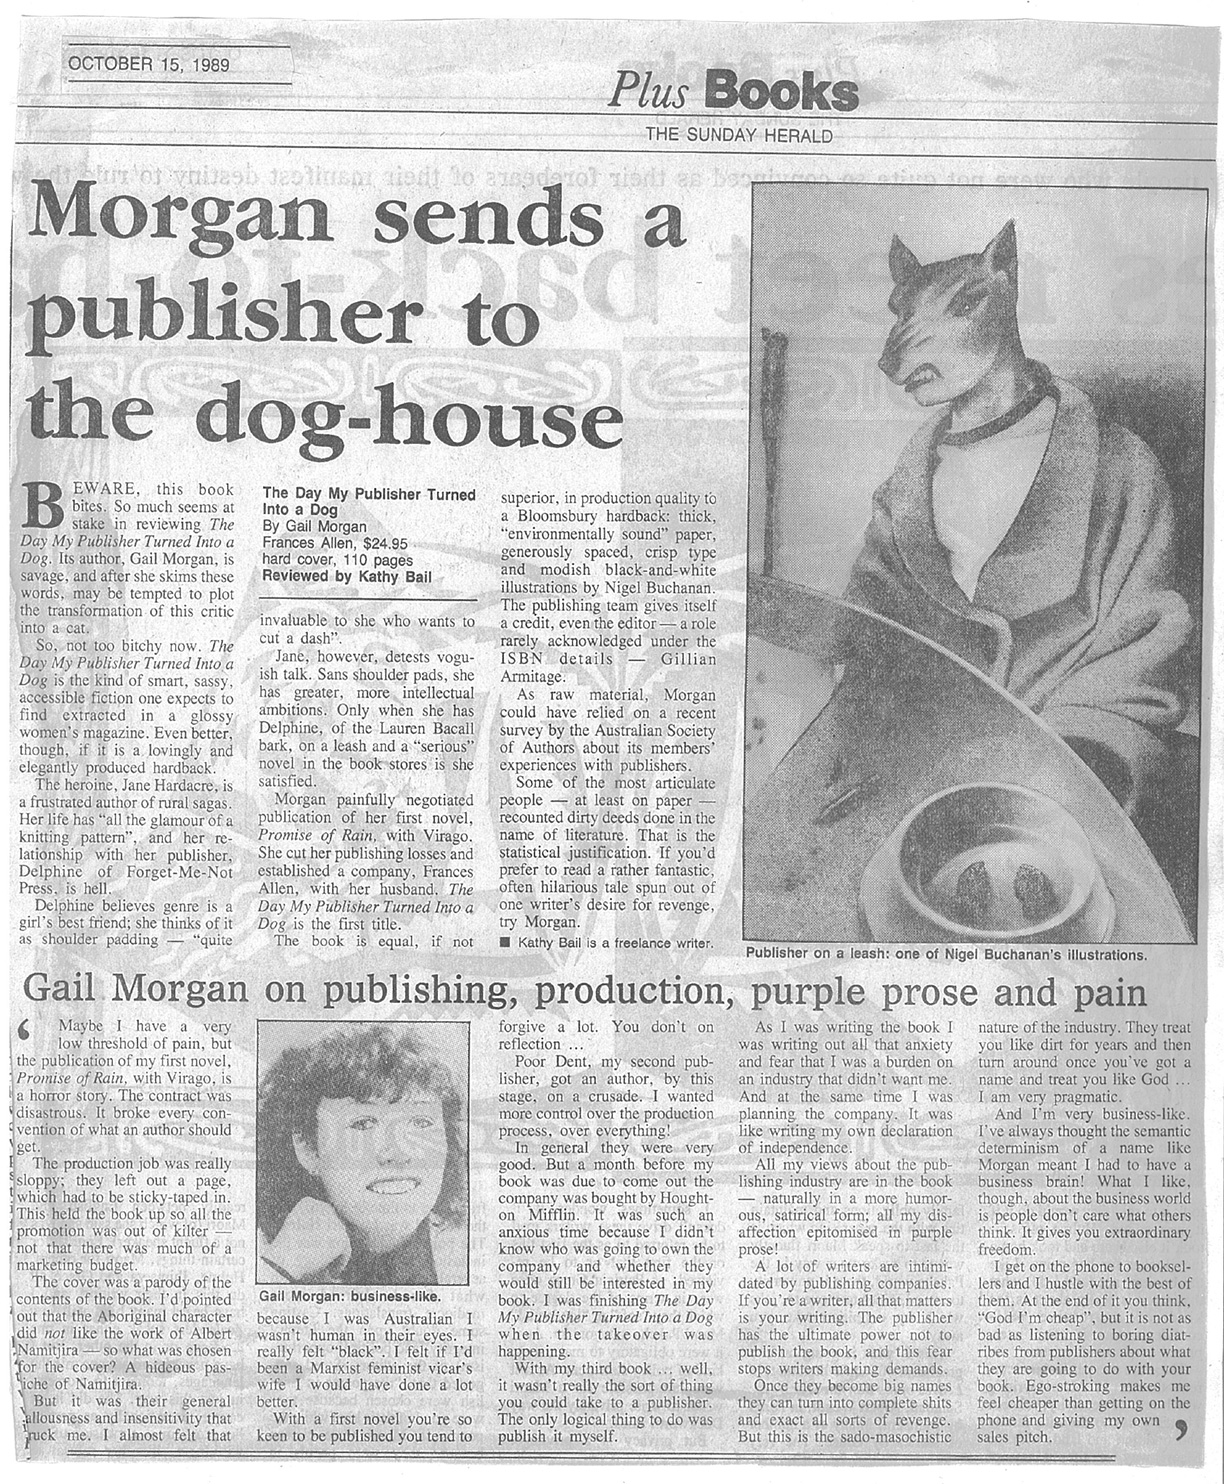 Morgan Sends a publisher to the dog house